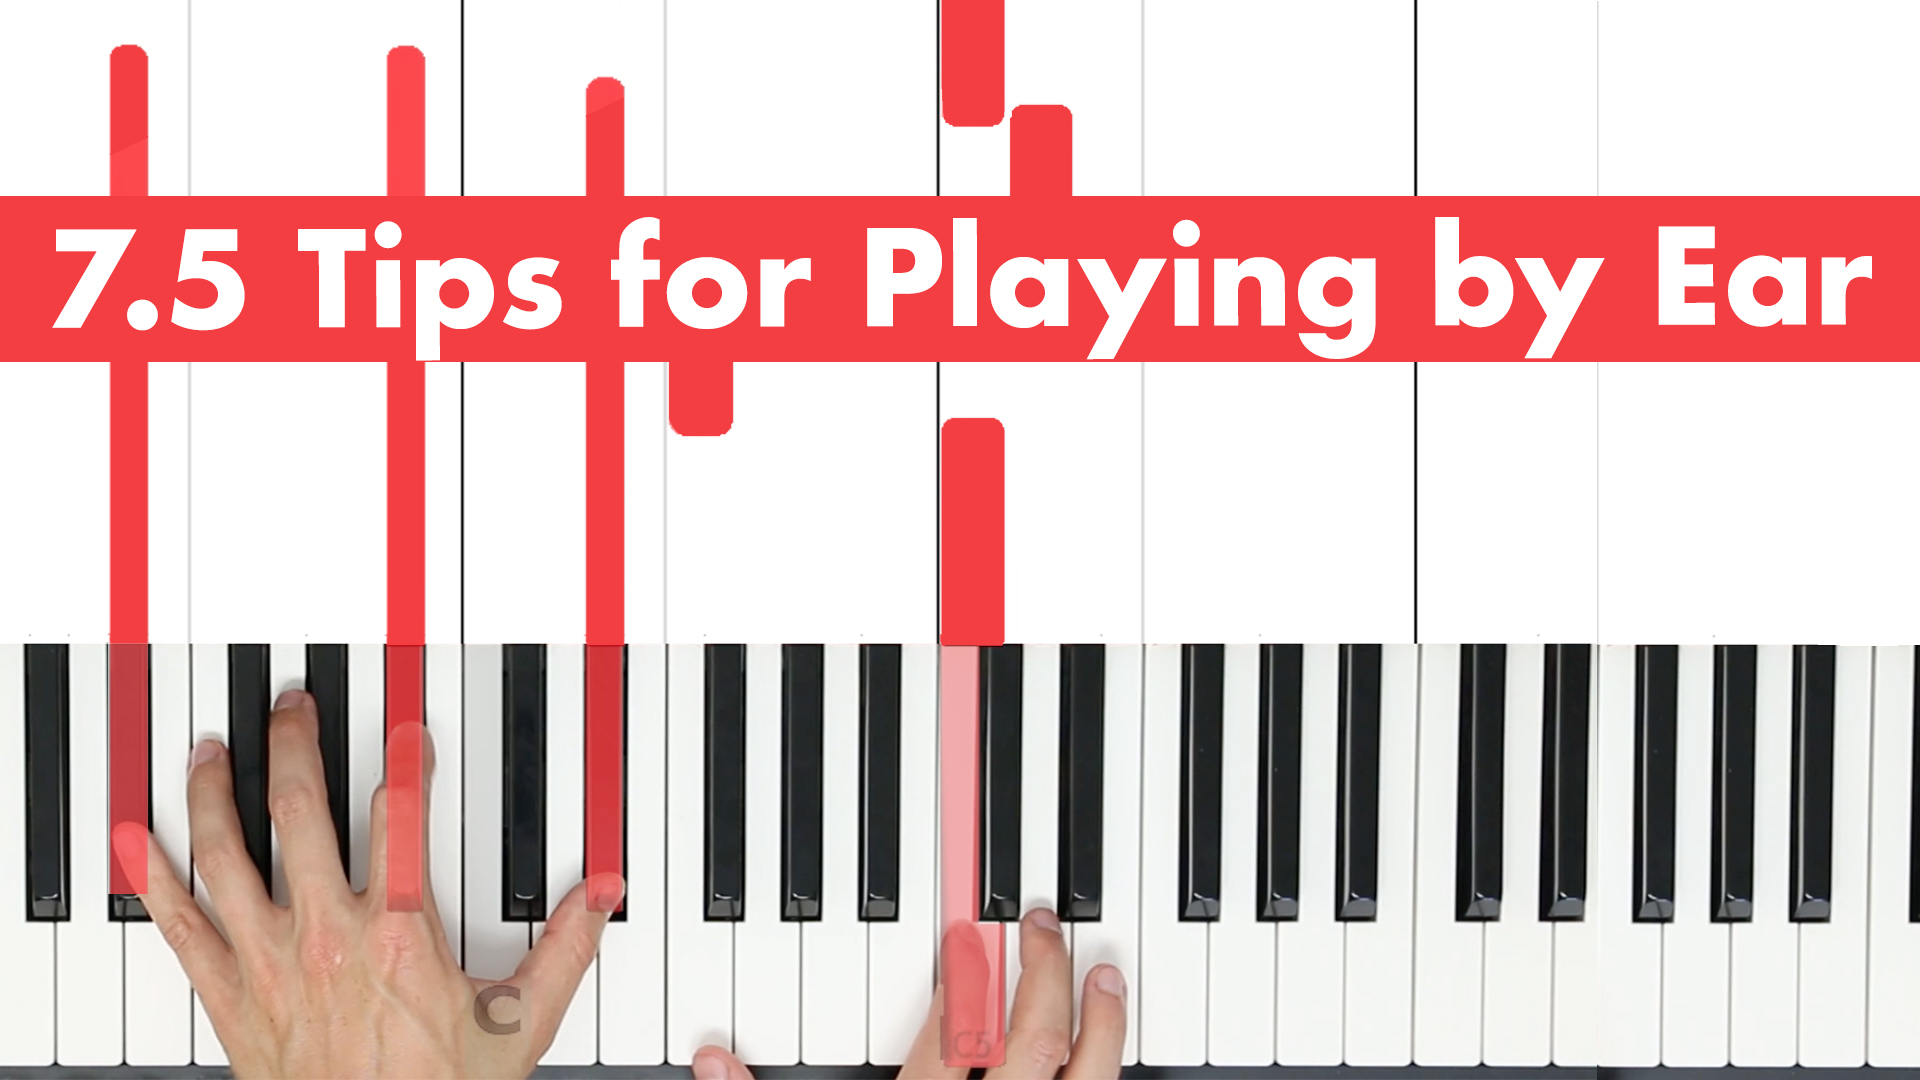 7.5 Tips for Playing by Ear